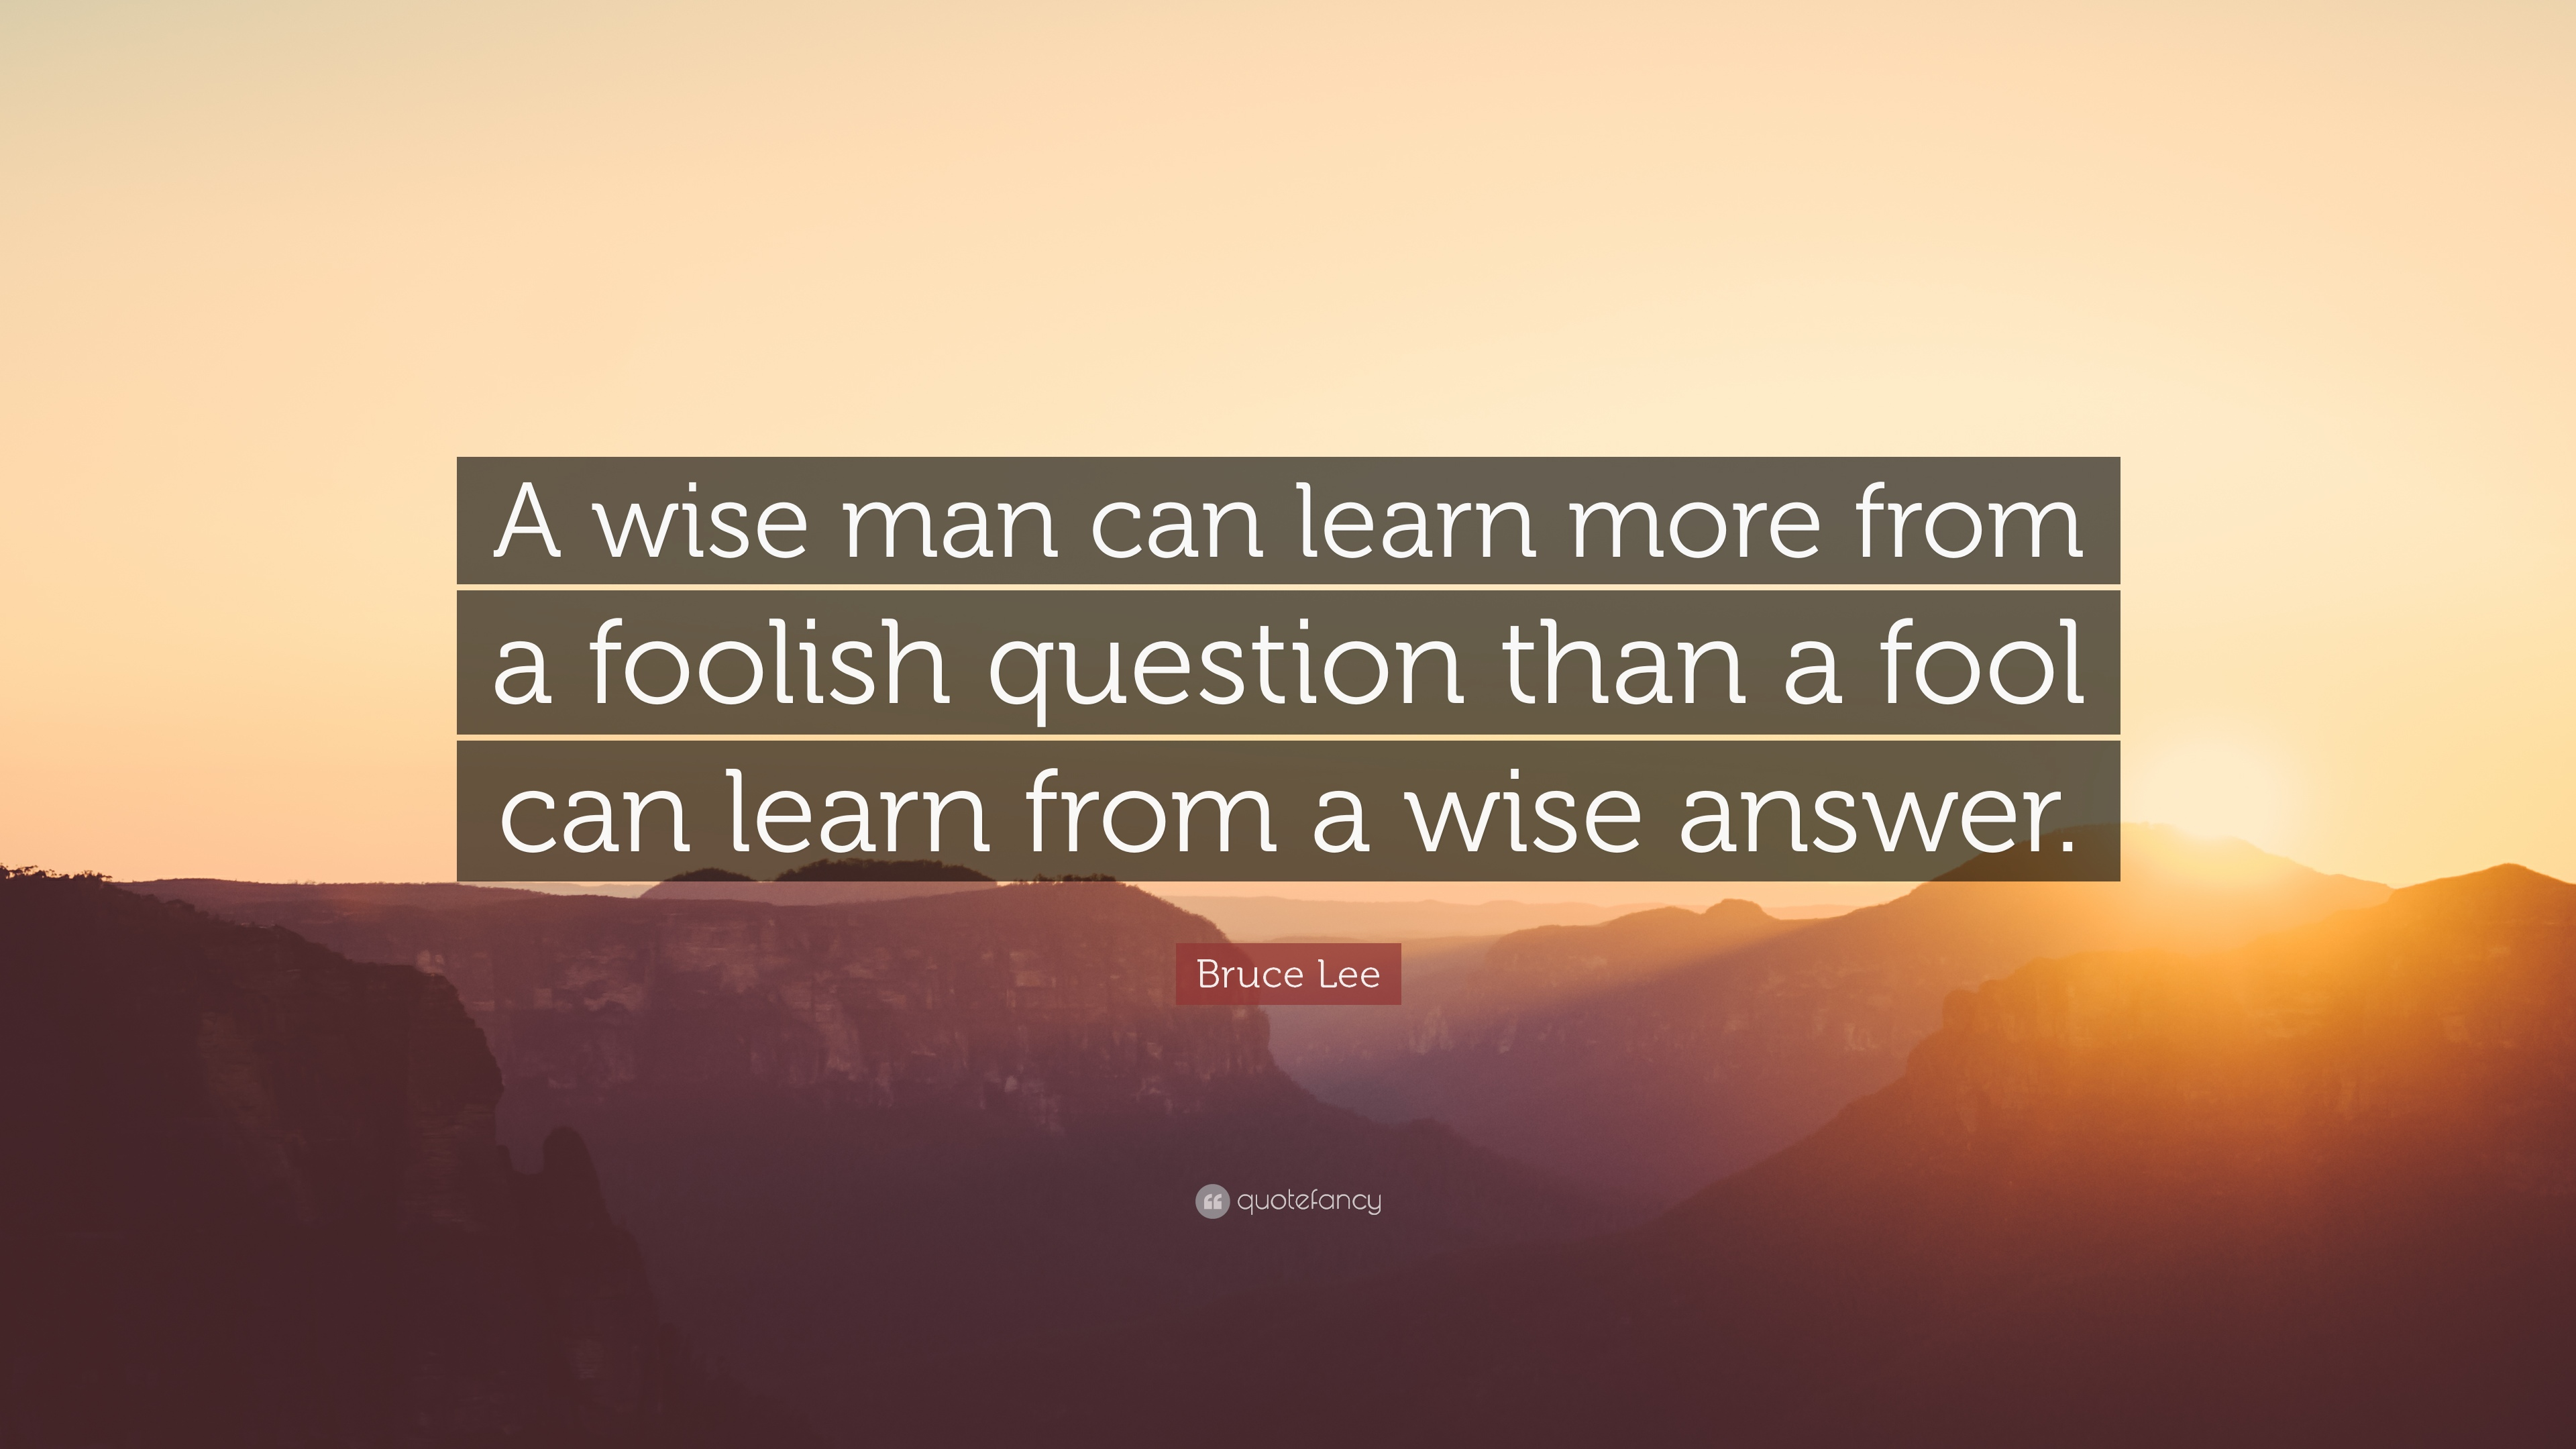 Wise Man Can Learn More Foolish Question Fool Can Learn Wise Answ